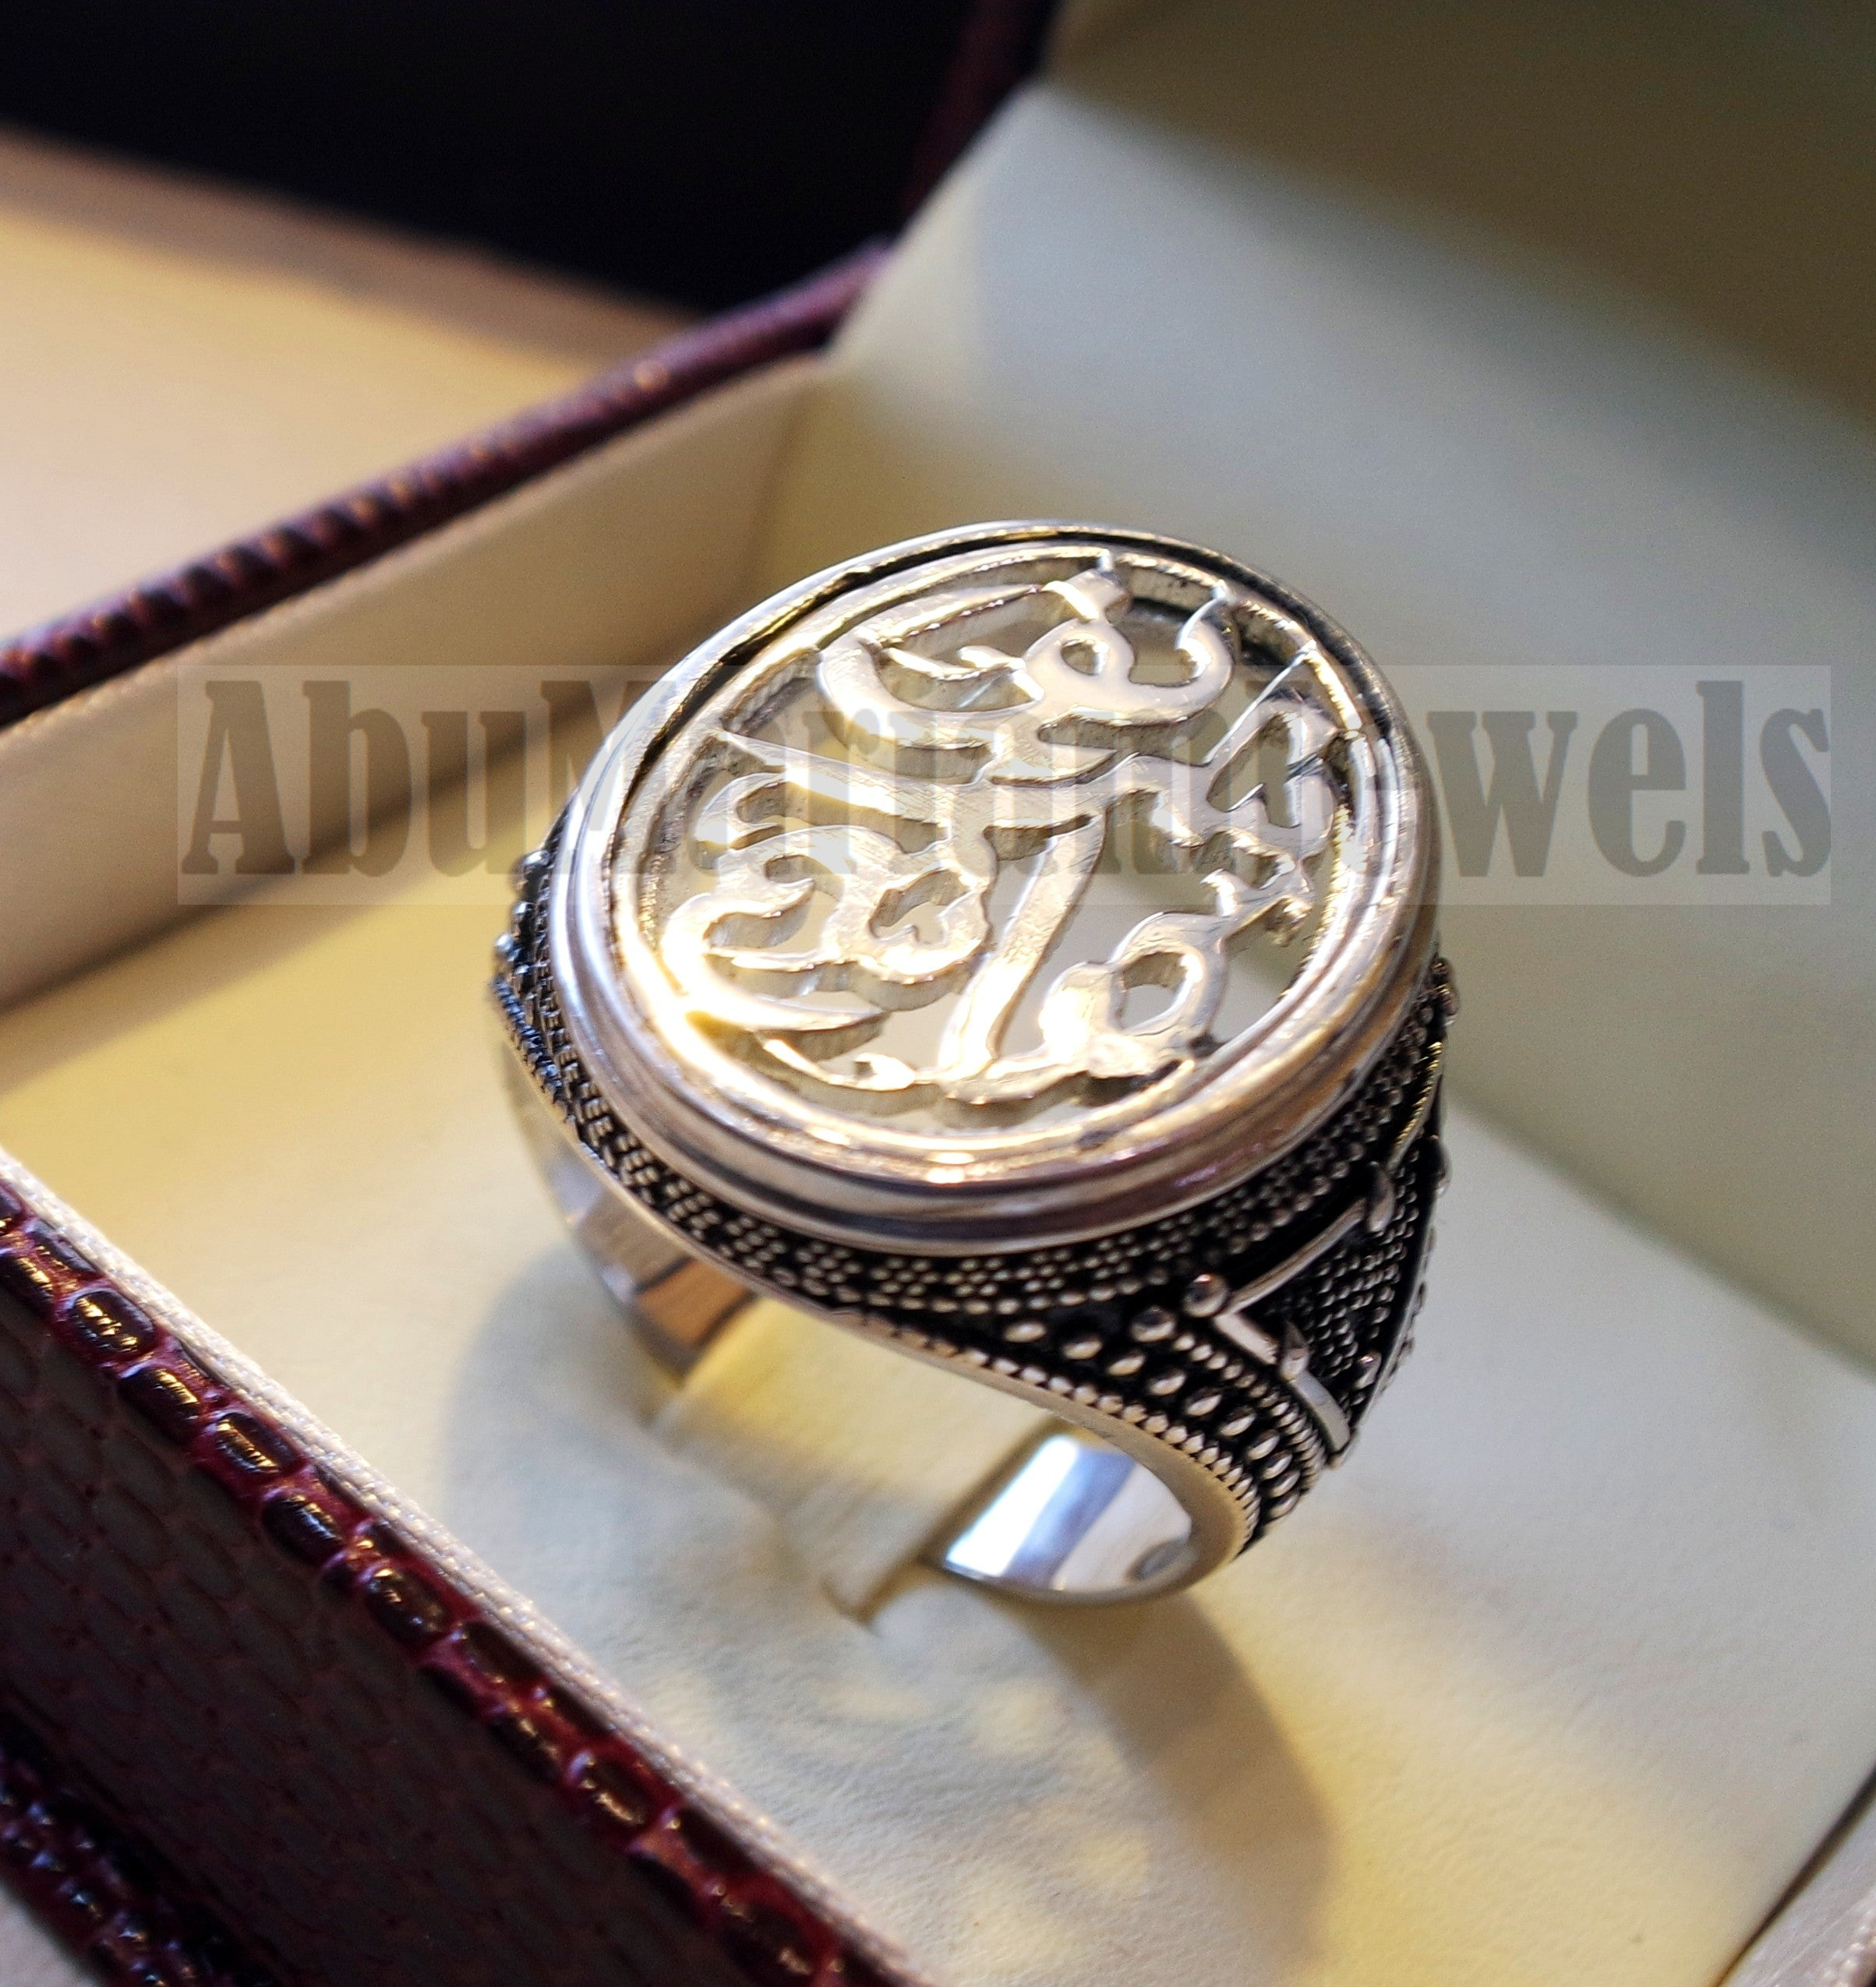 Customized Arabic calligraphy names handmade ring personalized antique jewelry style sterling silver 925 any size TSN1006 خاتم اسم تفصيل